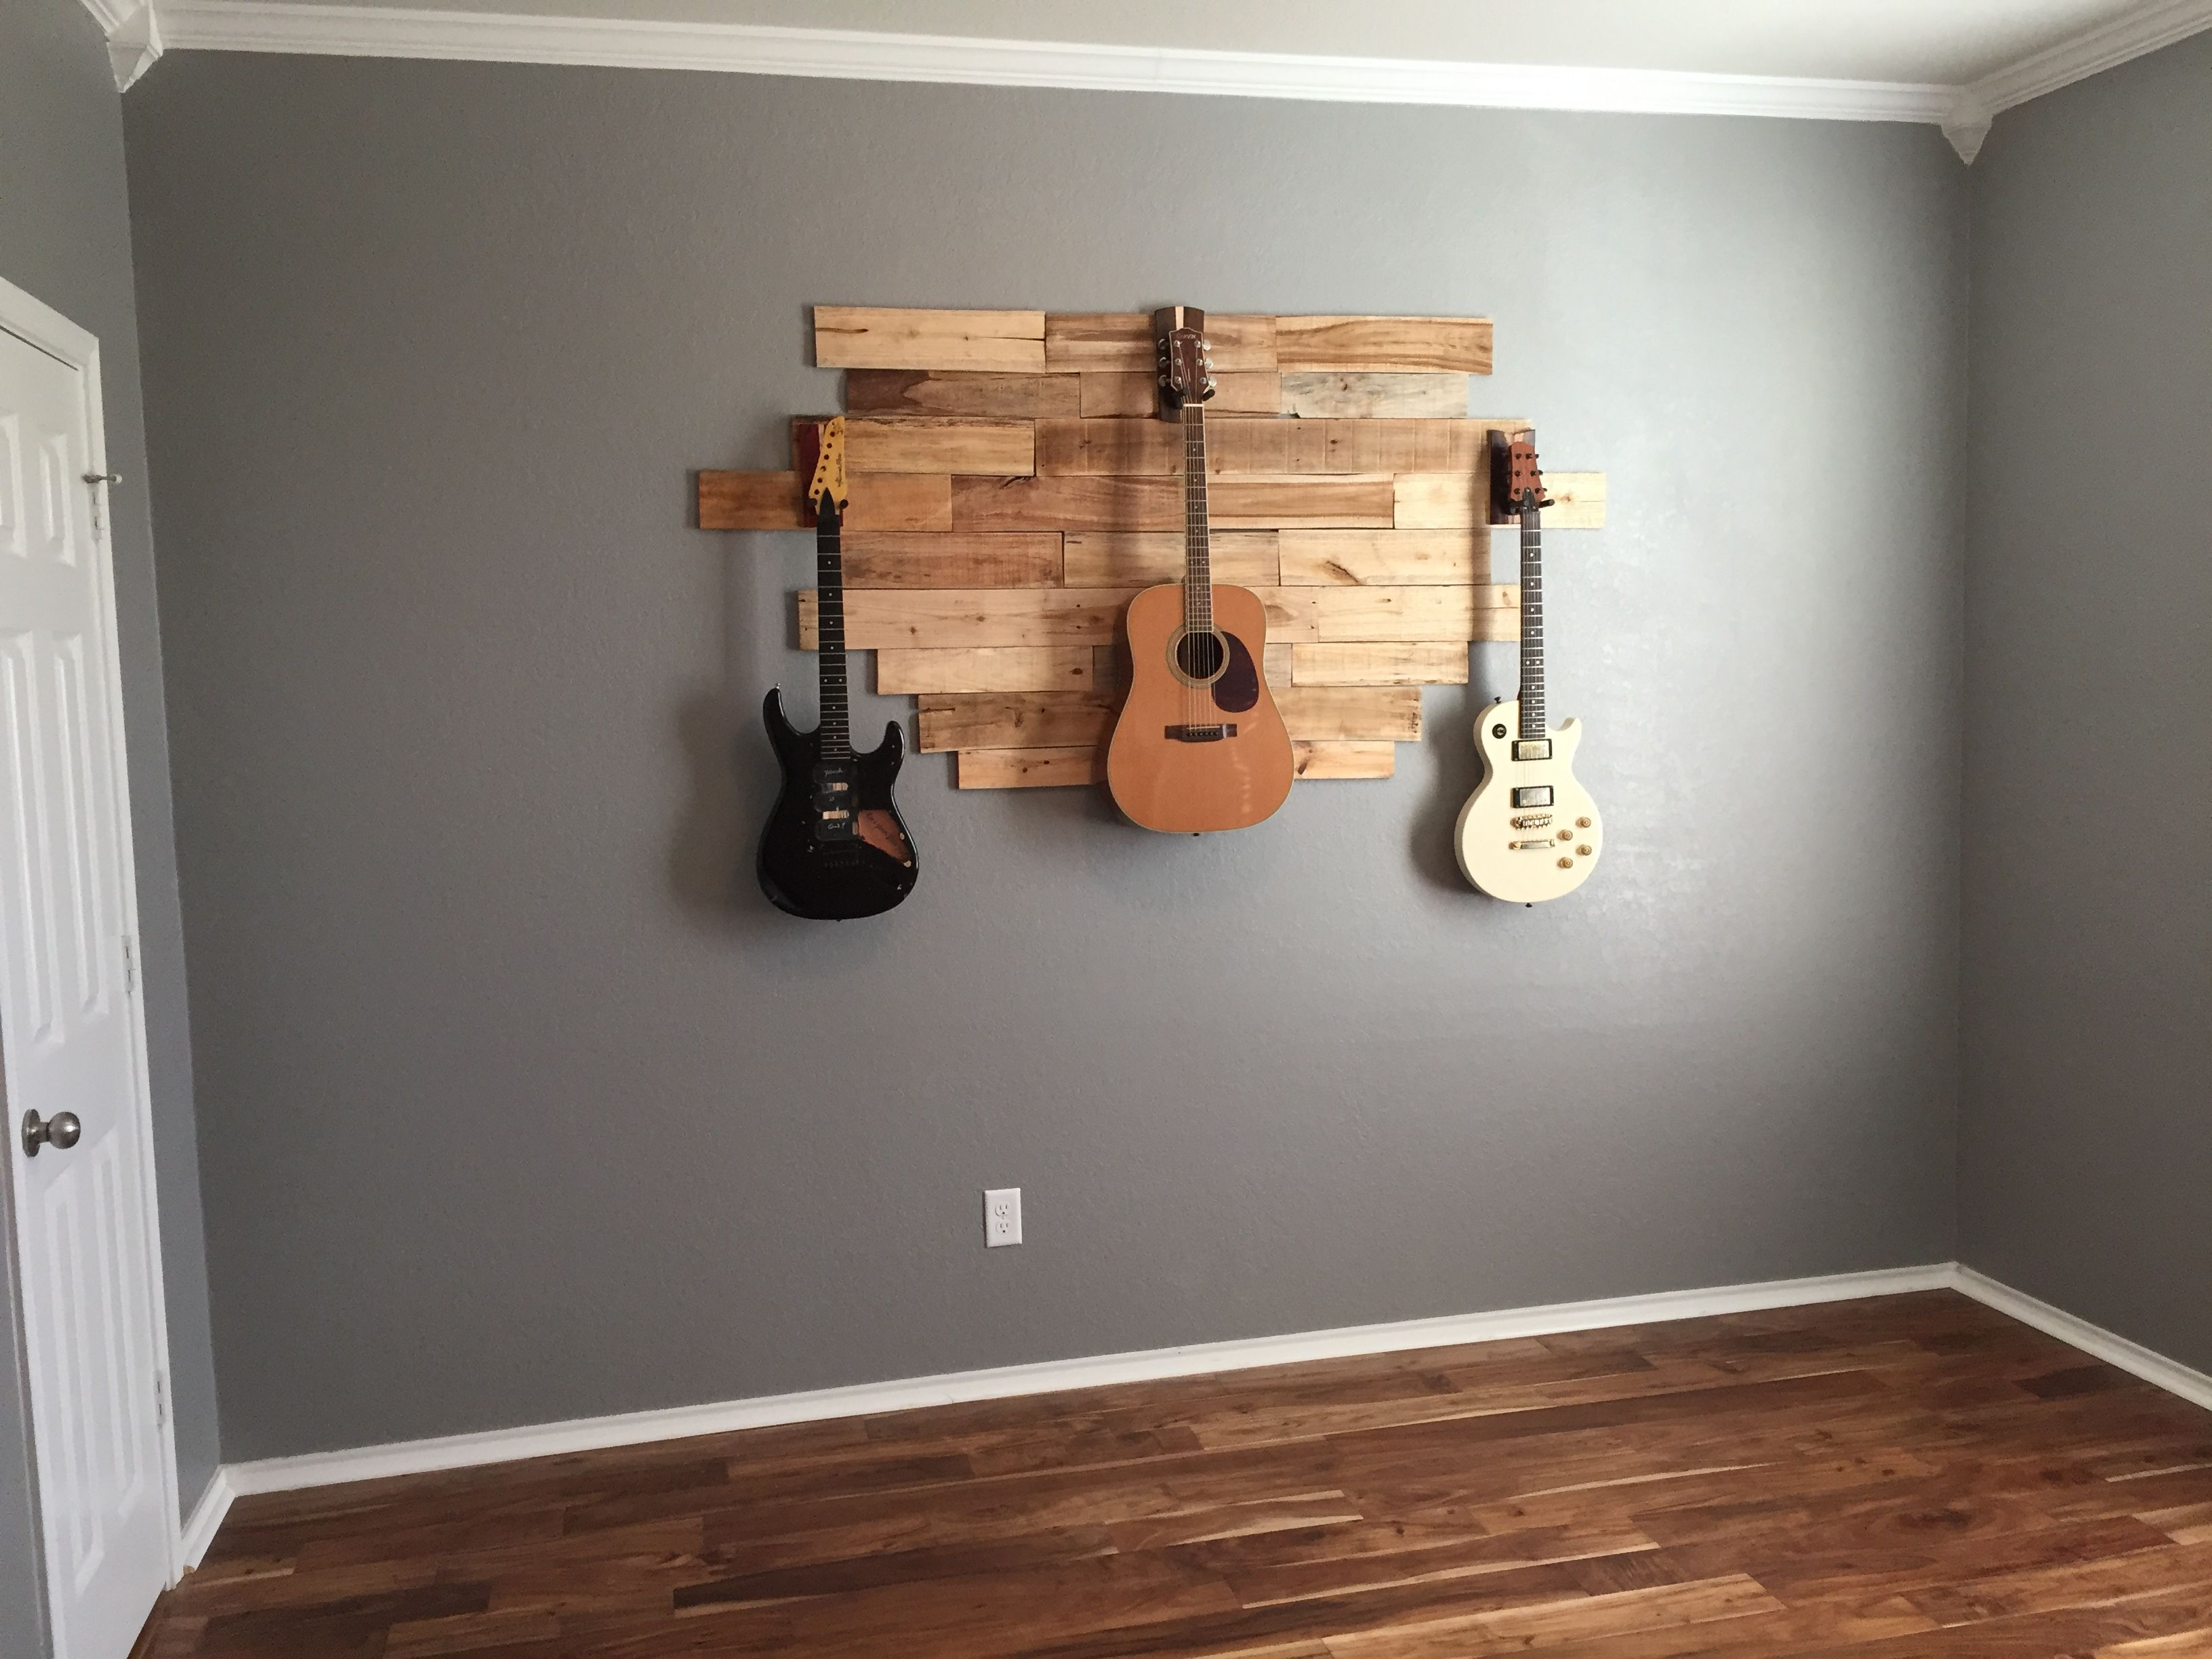 Diy pallet wood hanging guitar display weekend project for Diy hanging picture display